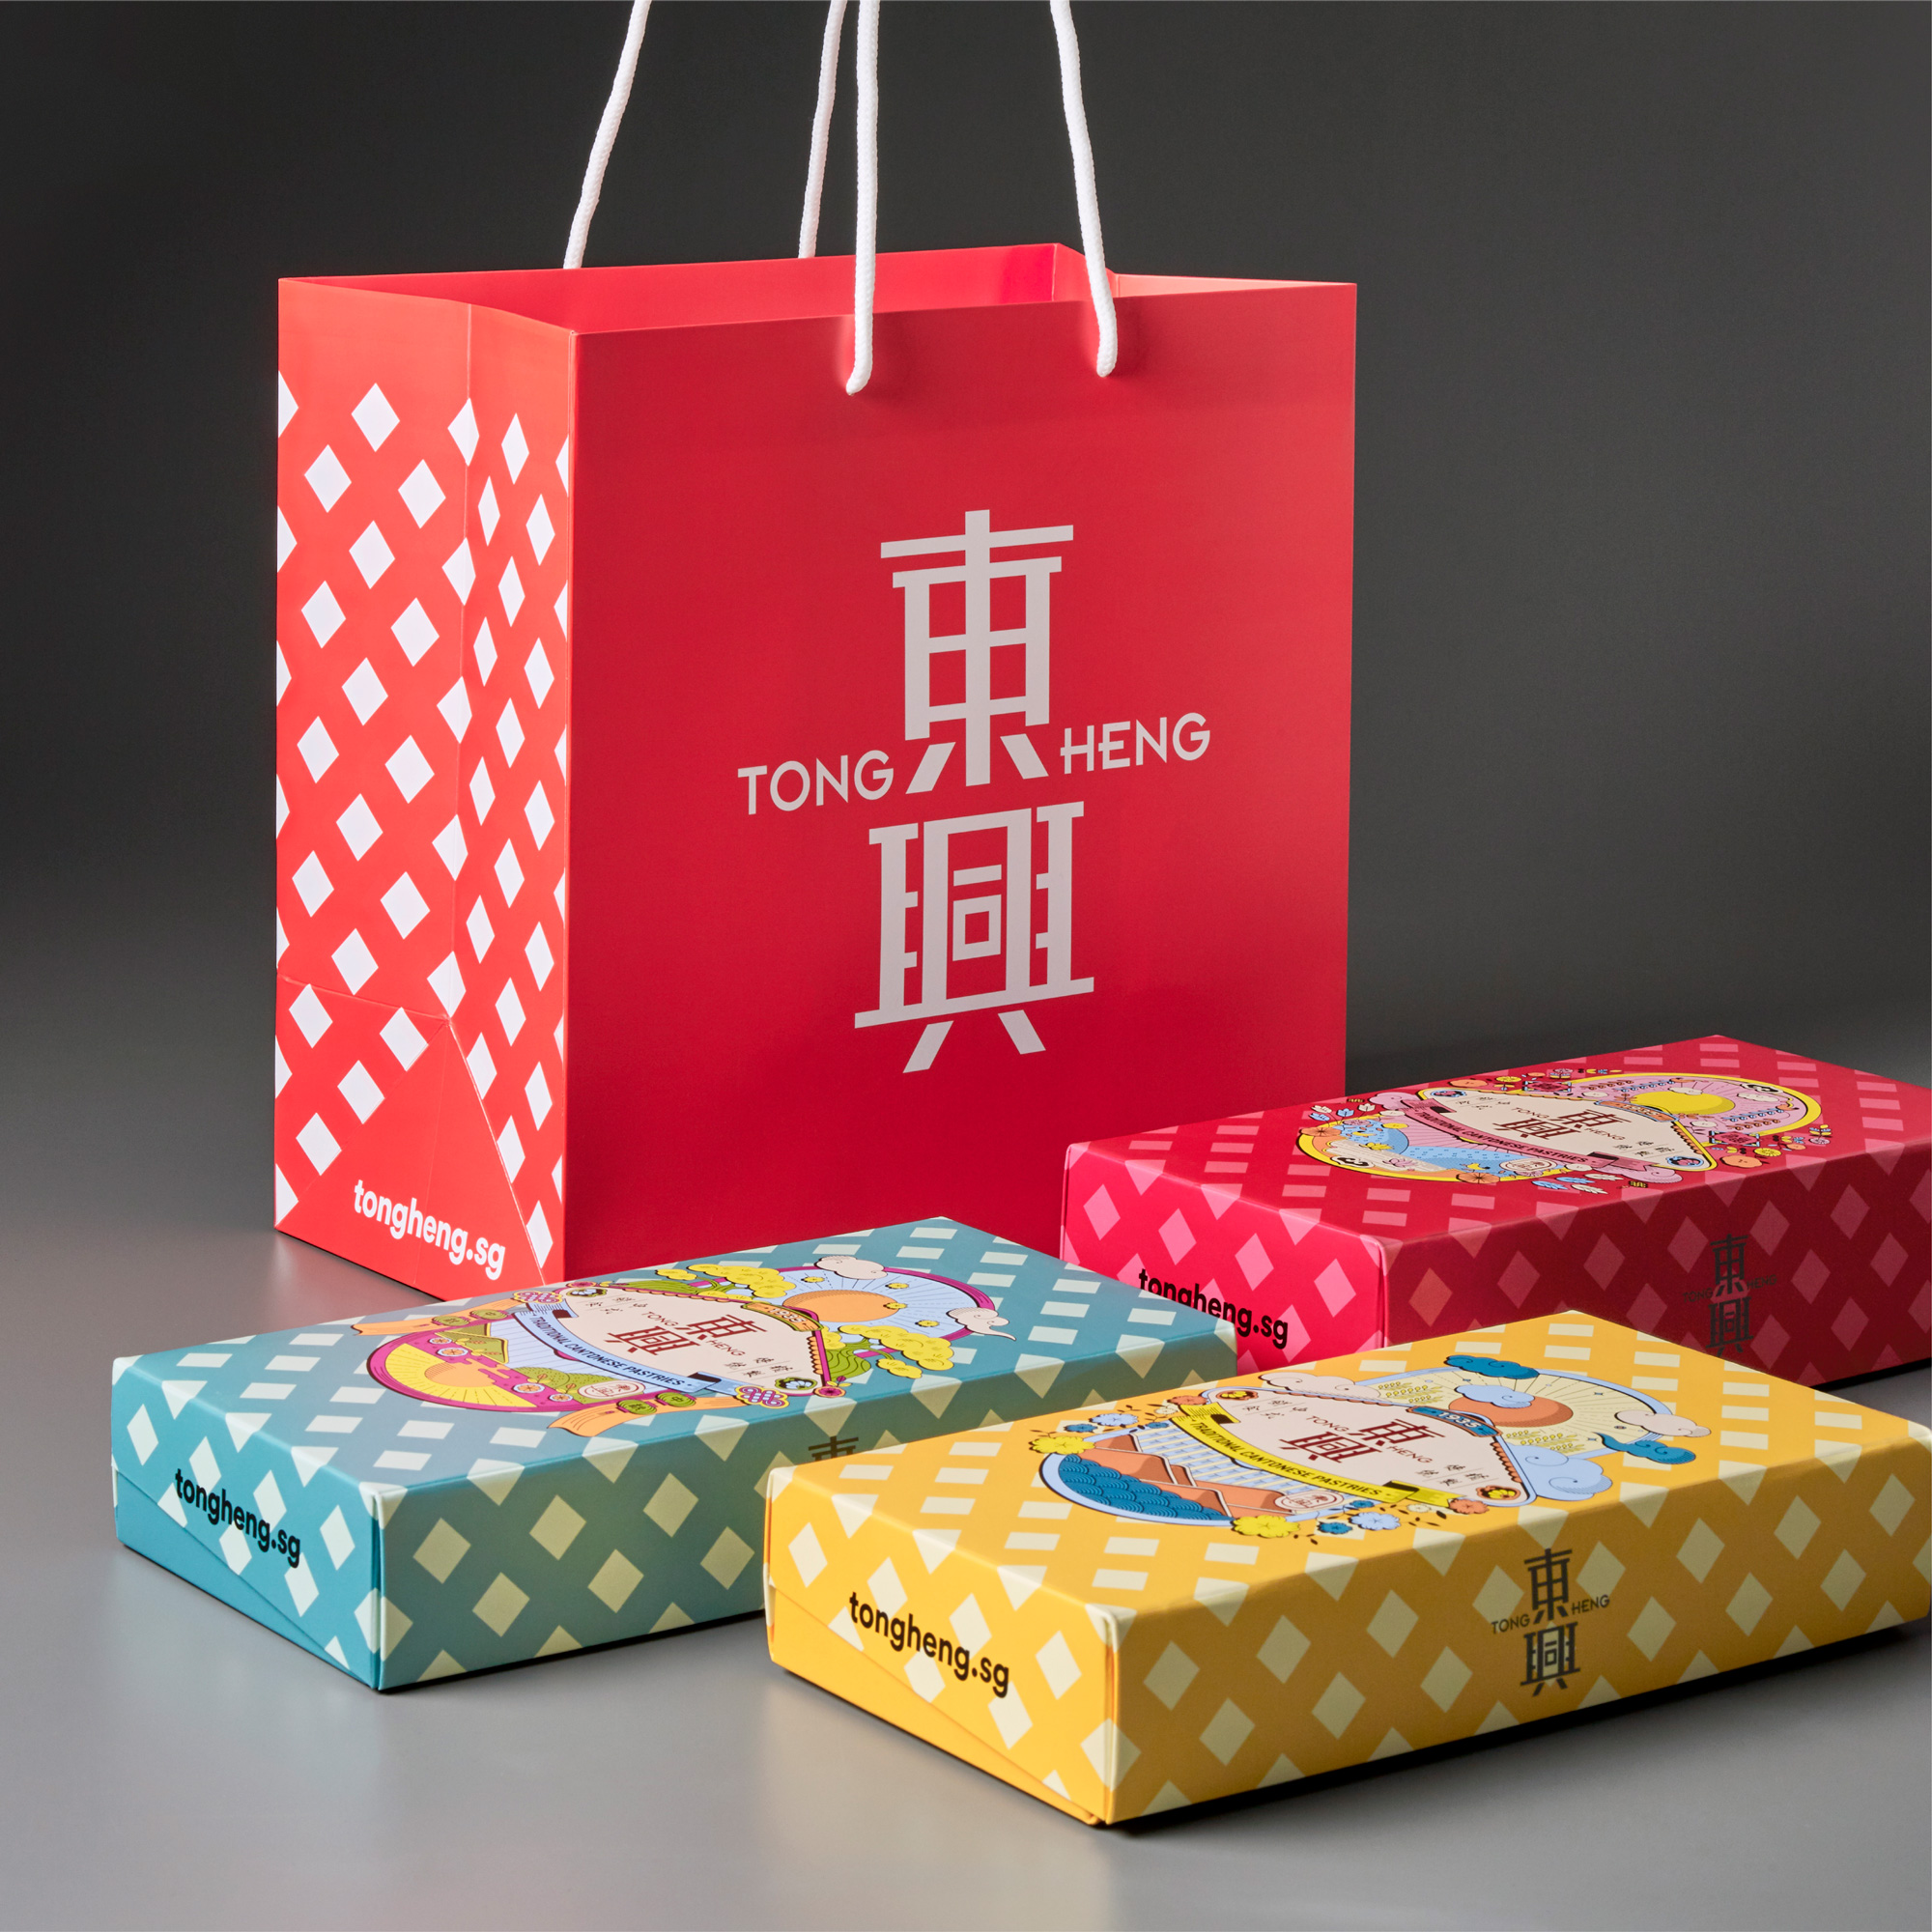 New Logo, Identity, and Packaging for Tong Heng by &Larry